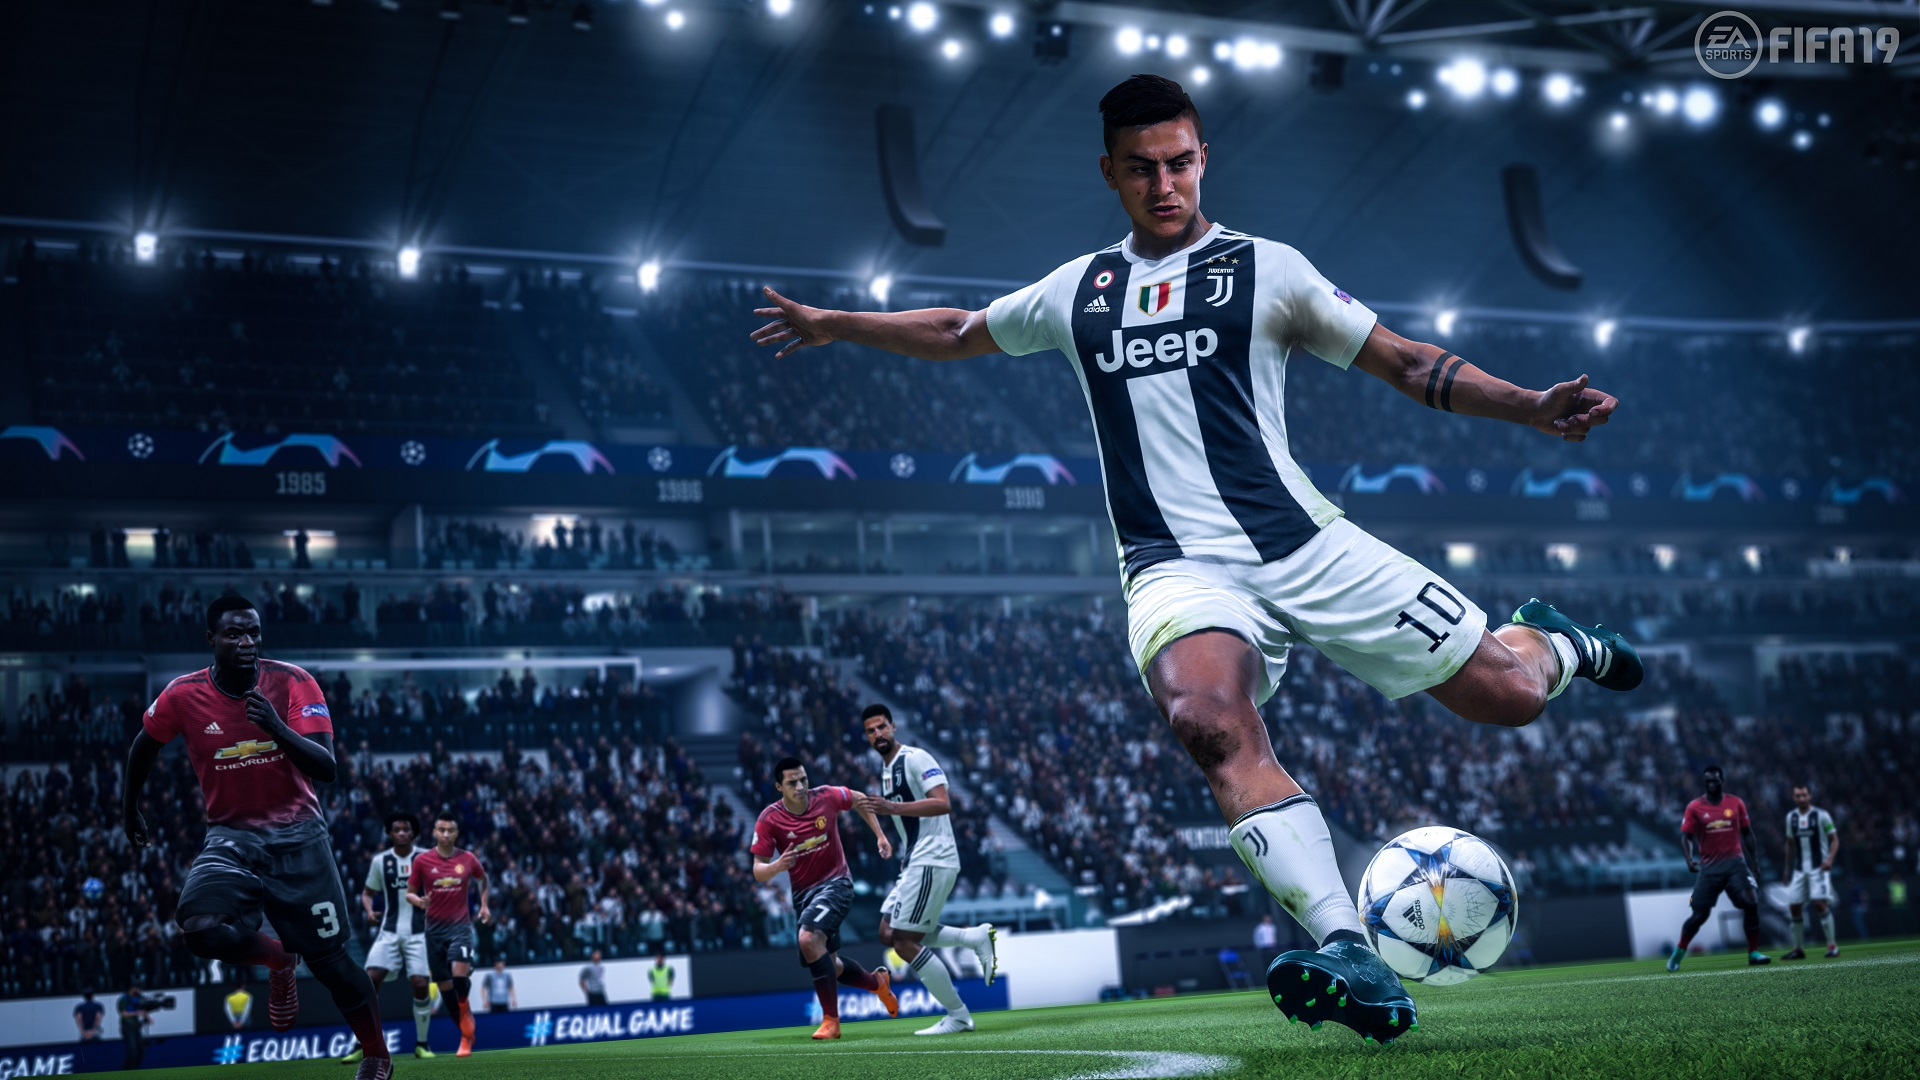 FIFA 20 Review: The champion of football games gets even better